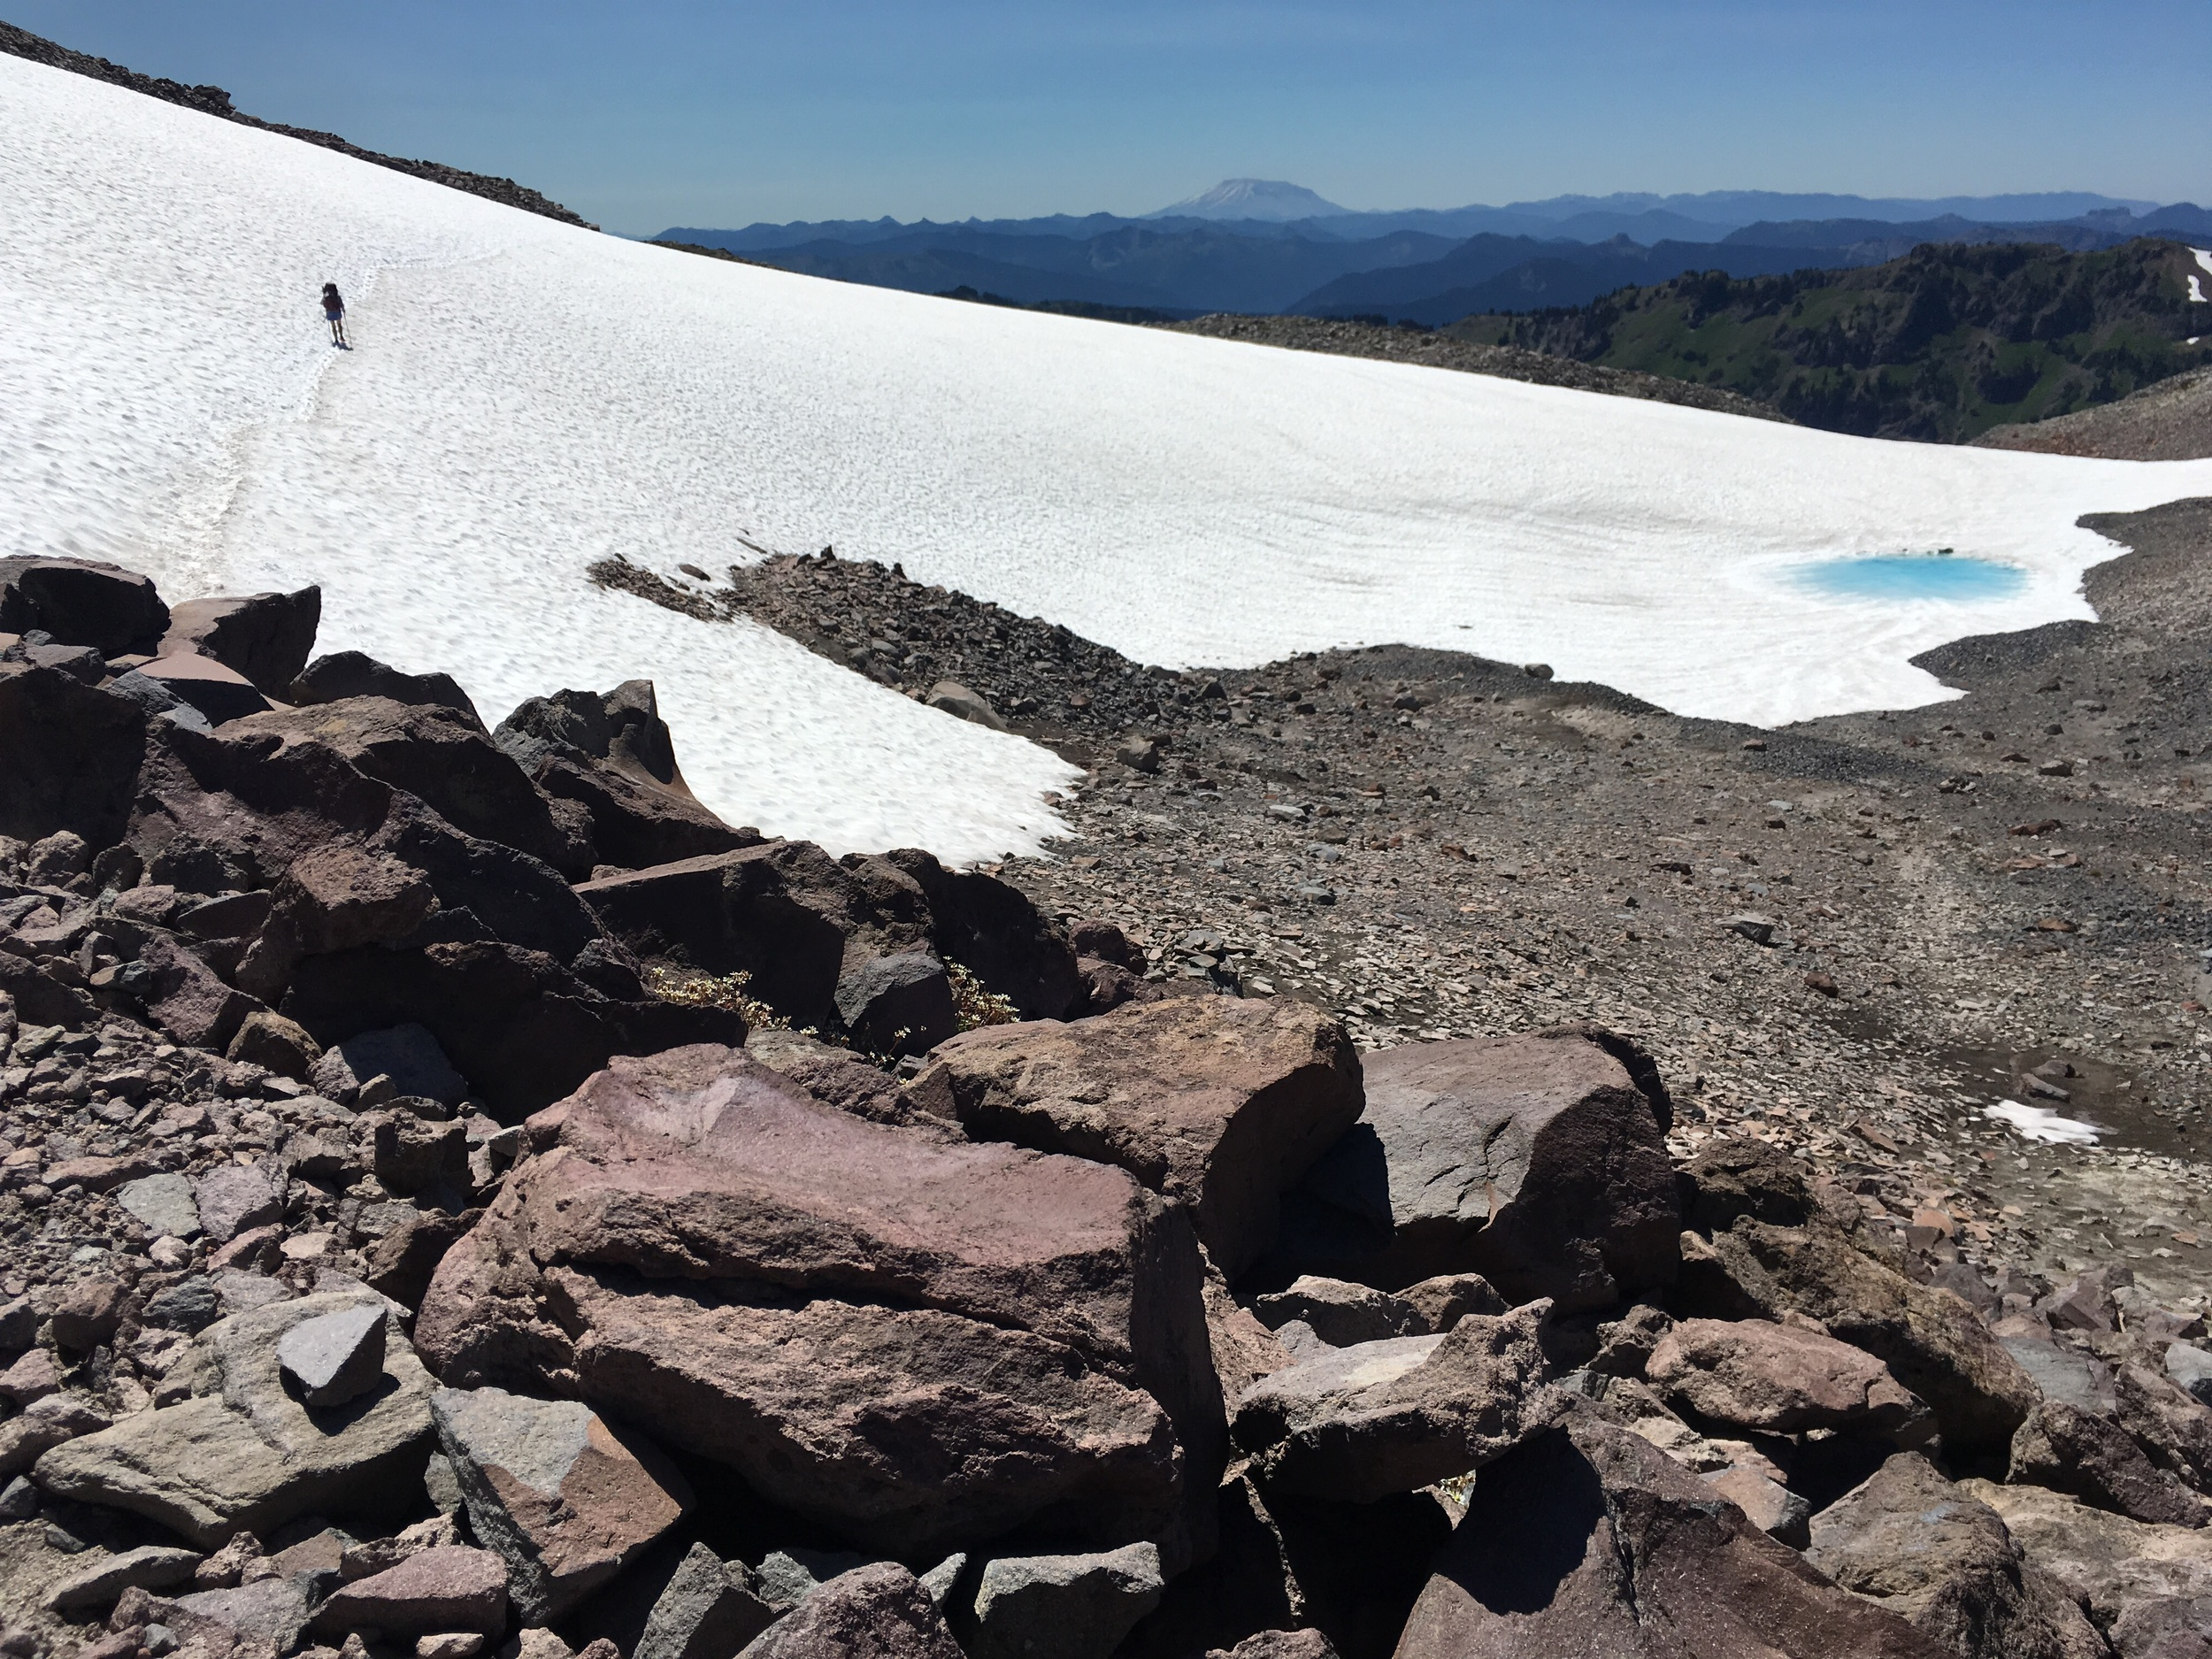 Me crossing another big snowfield with Mt St Helens in the distance